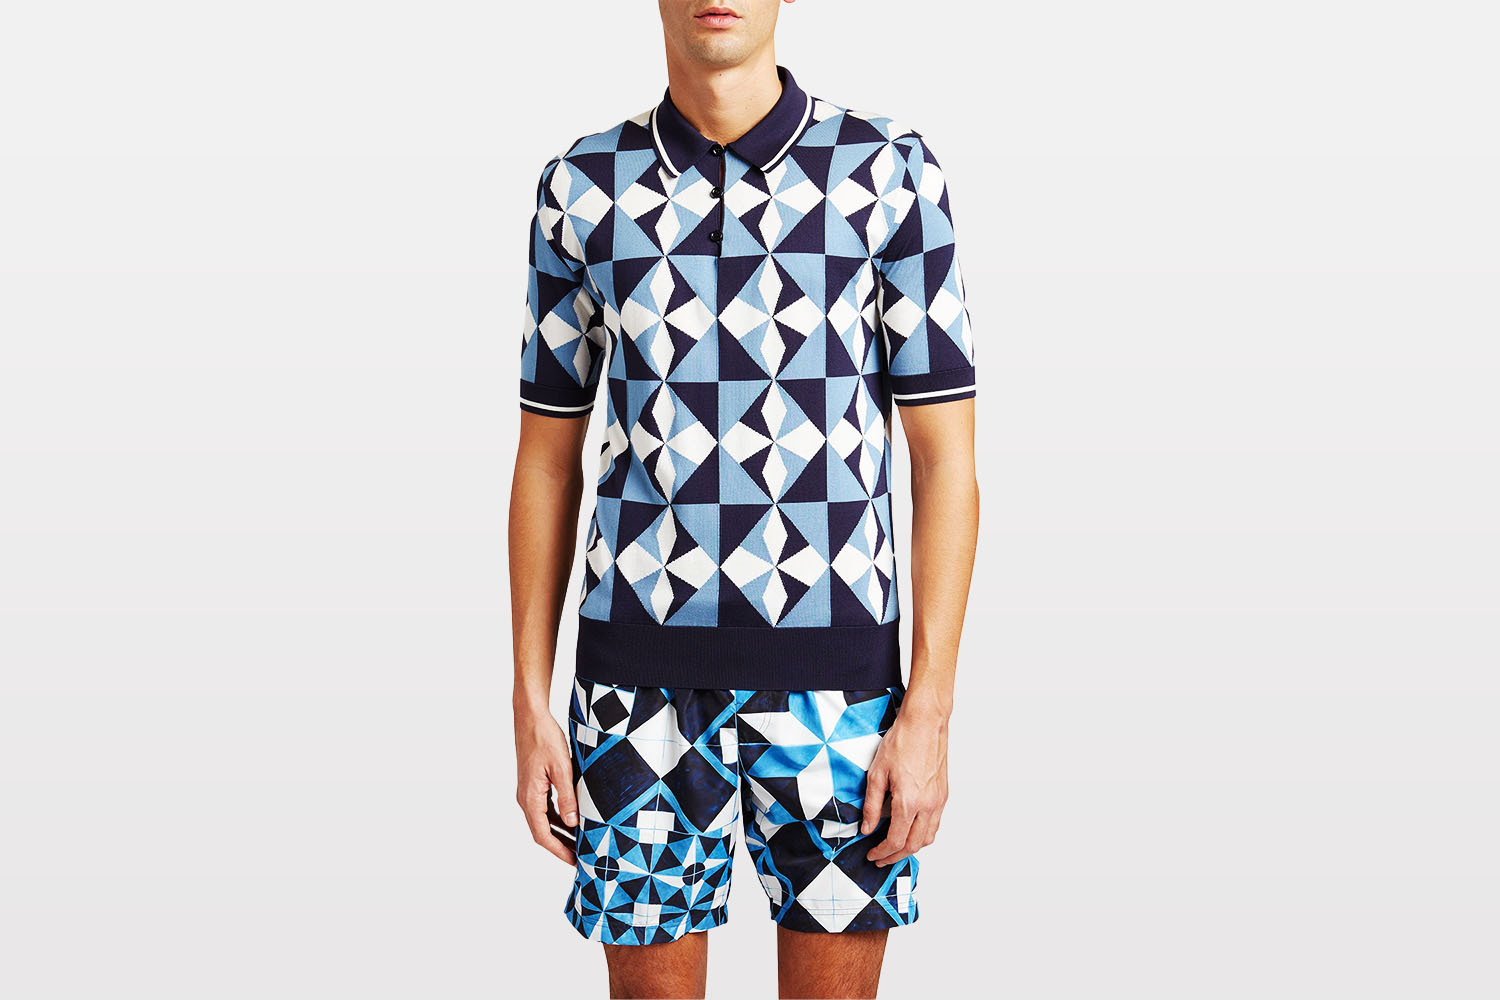 Dolce & Gabbana Allover Intarsia Polo Shirt from Neiman Marcus